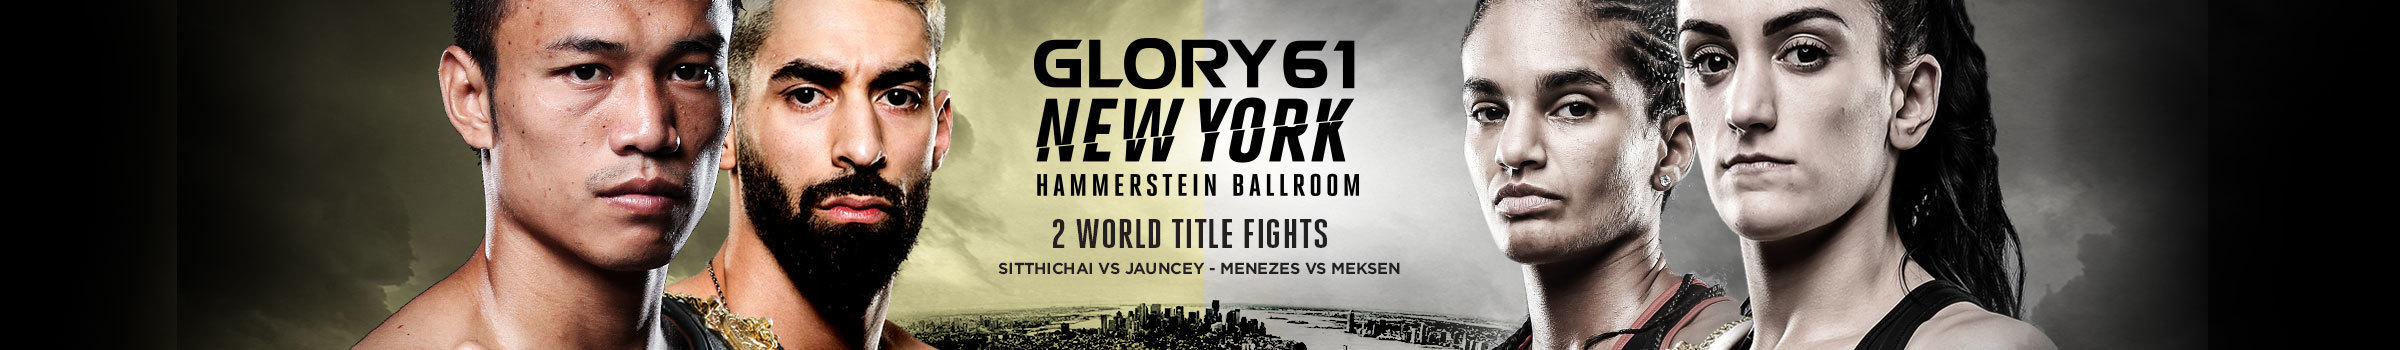 GLORY 61 New York